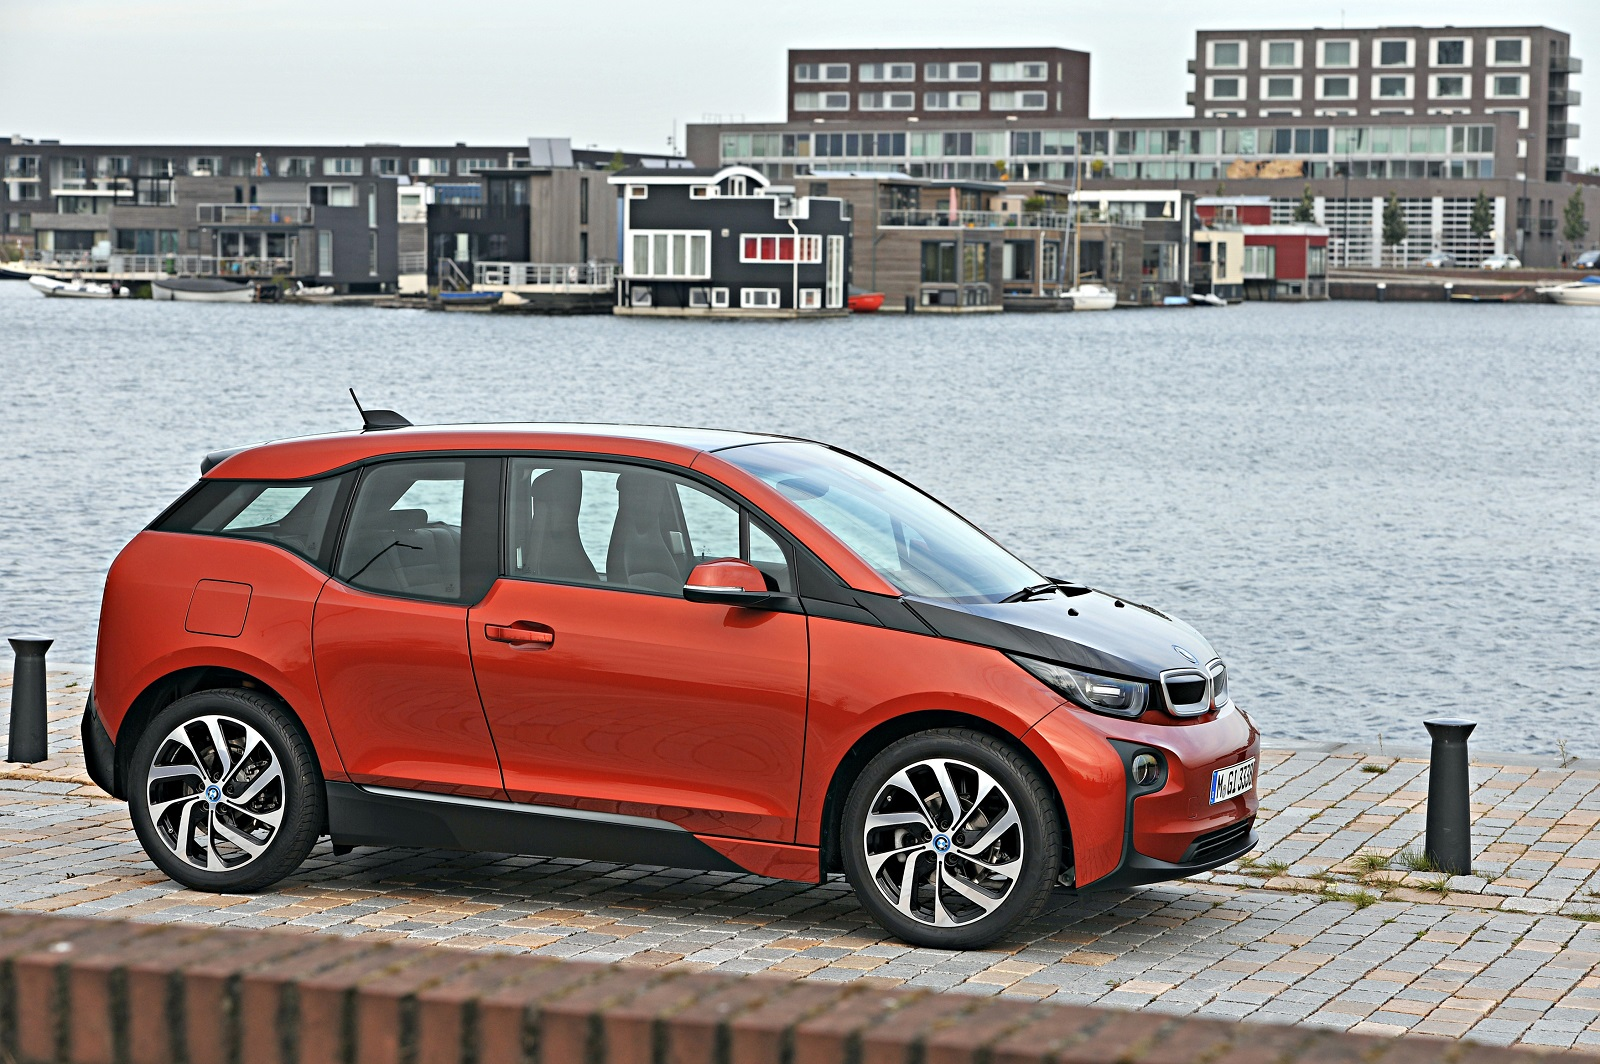 Test Pays Bmw I3 Electric Car Owners To Let Utility Delay Charging